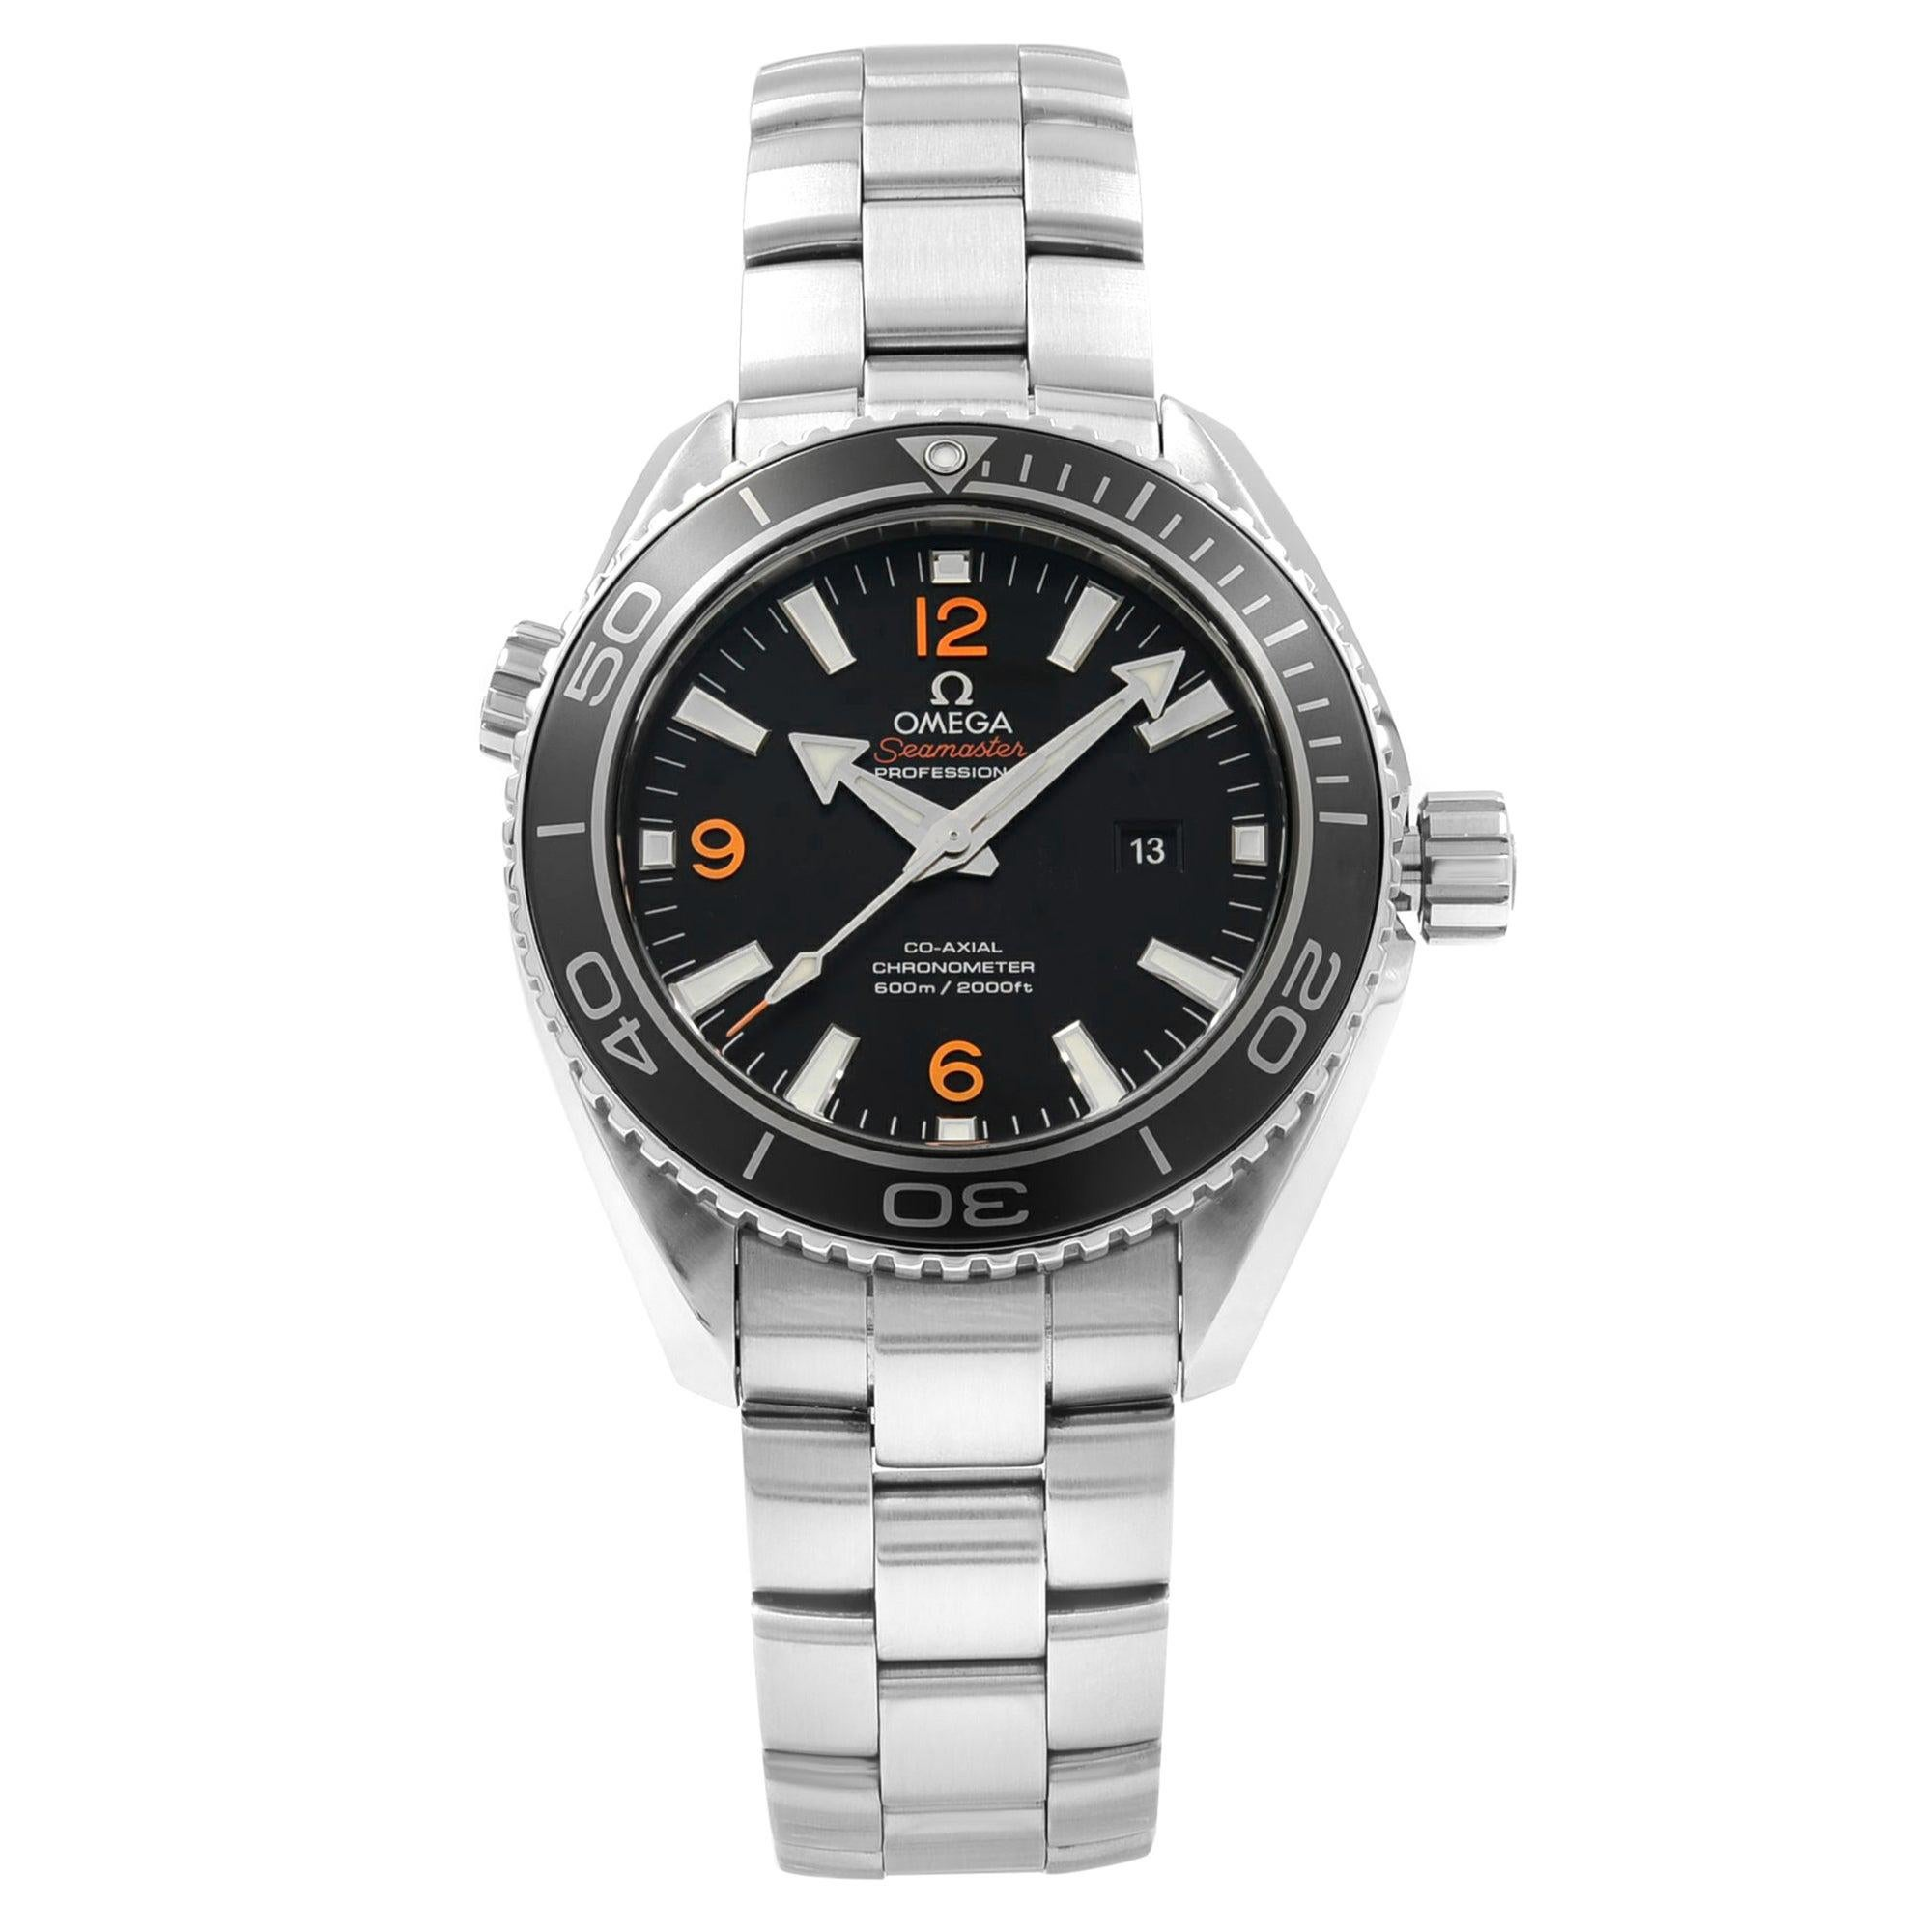 Omega Seamaster Planet Ocean Steel Unisex Automatic Watch 232.30.38.20.01.002